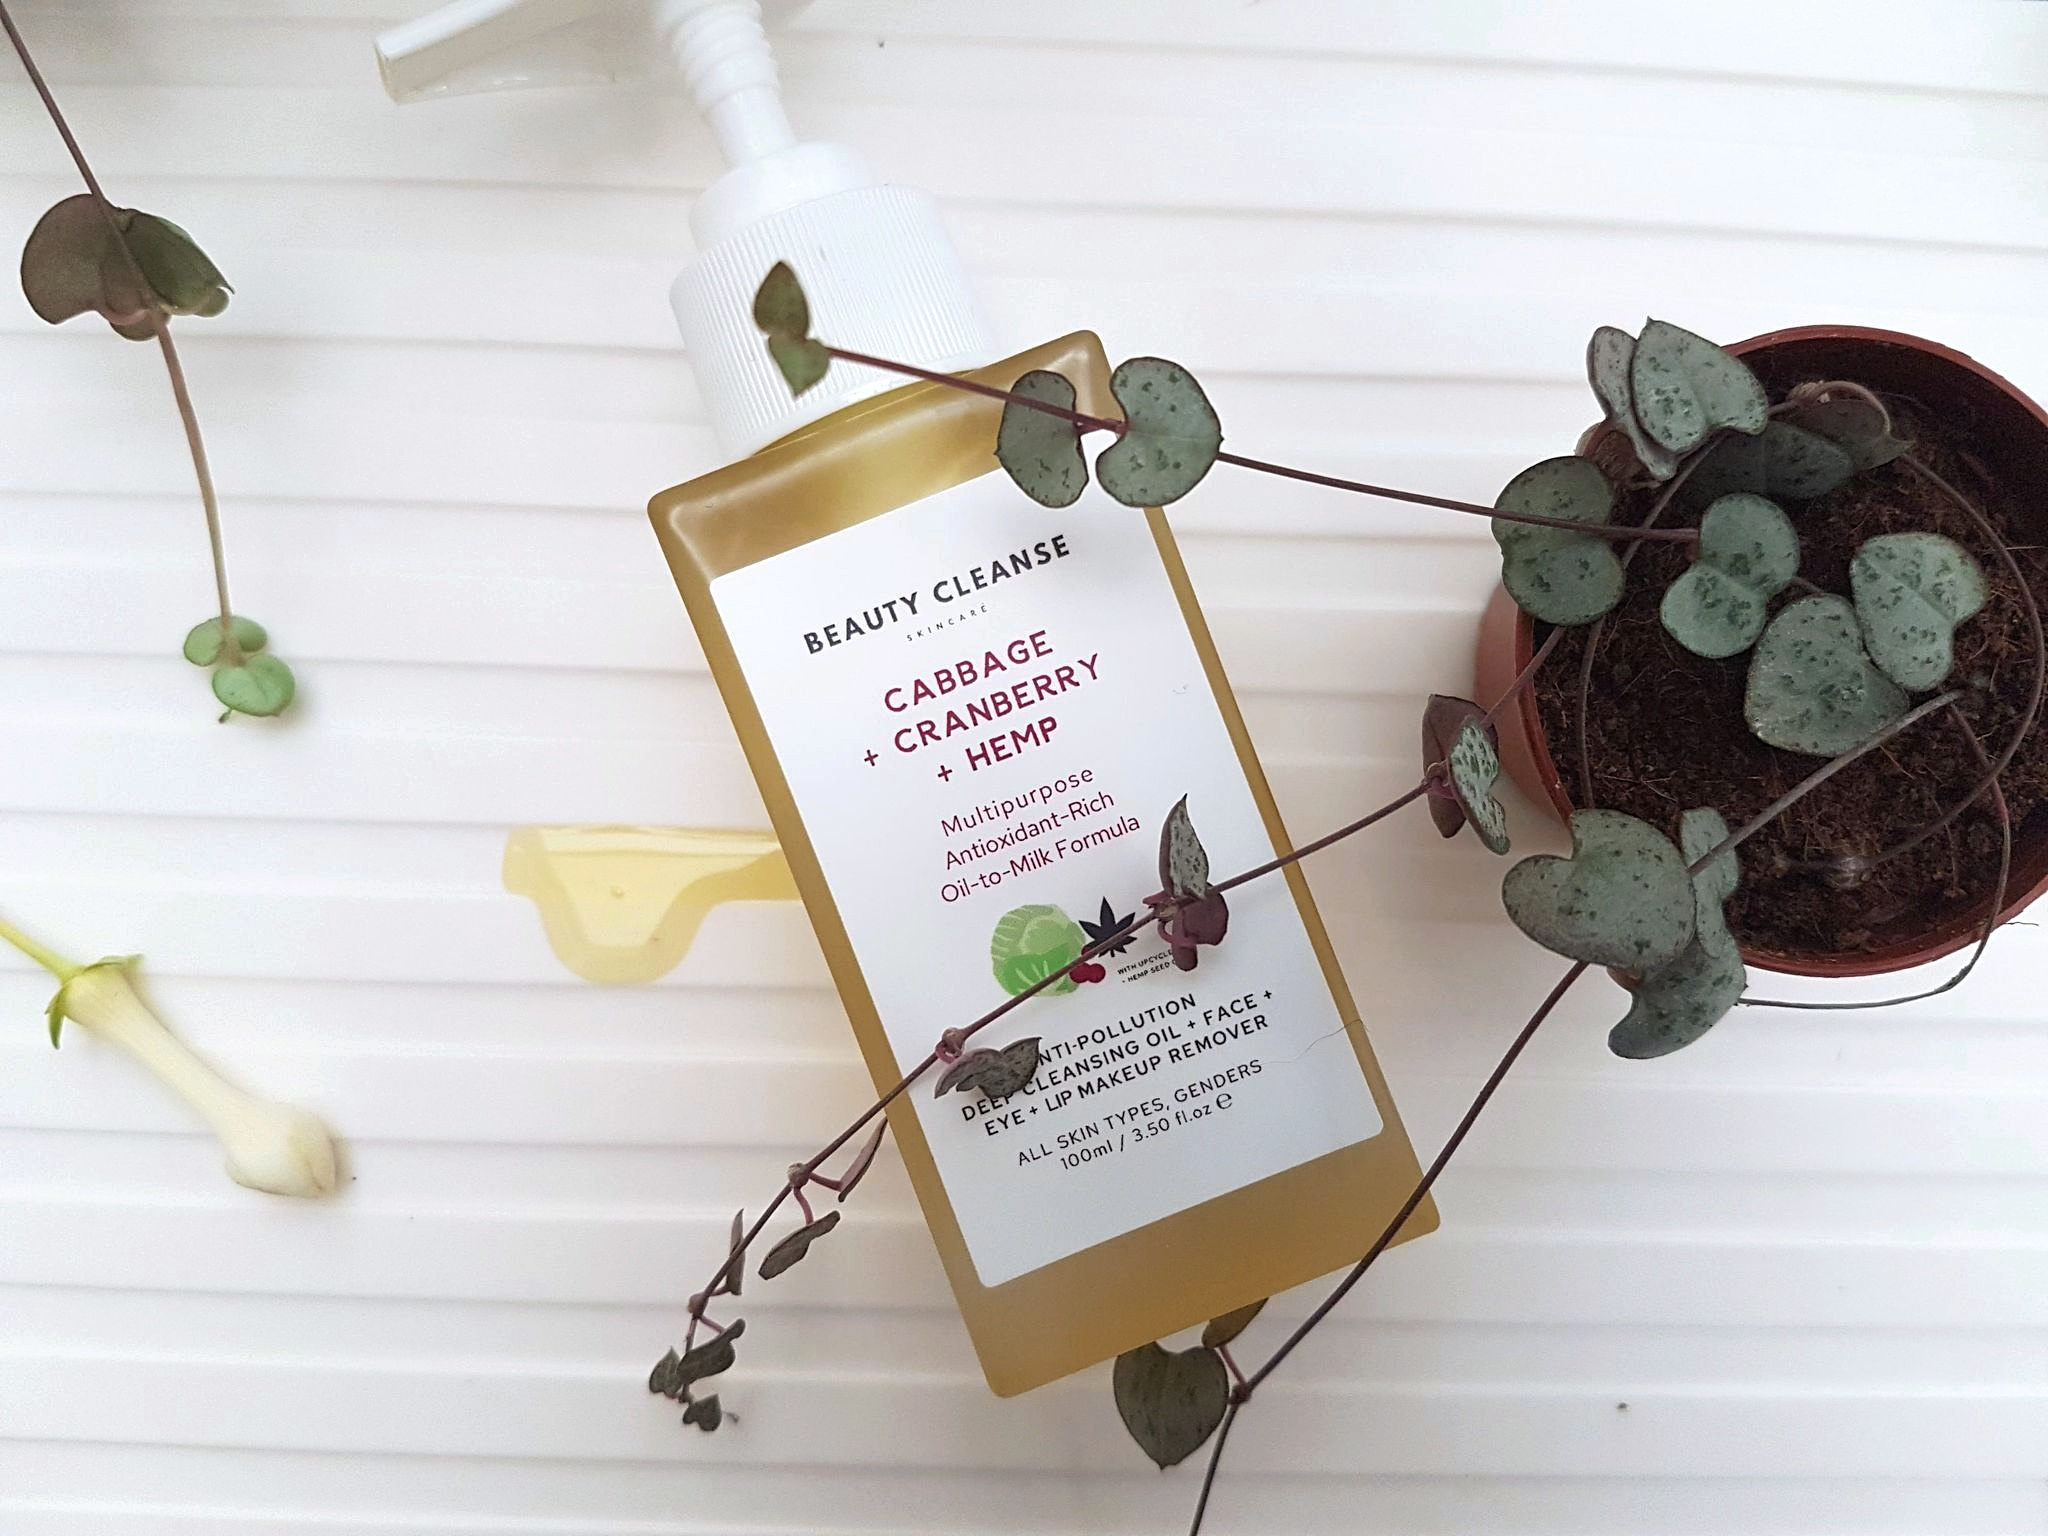 Beauty Cleanse Skincare Cleansing Oil Makeup Remover glass bottle next to a golden puddle of oil, surrounded by string of hearts plants